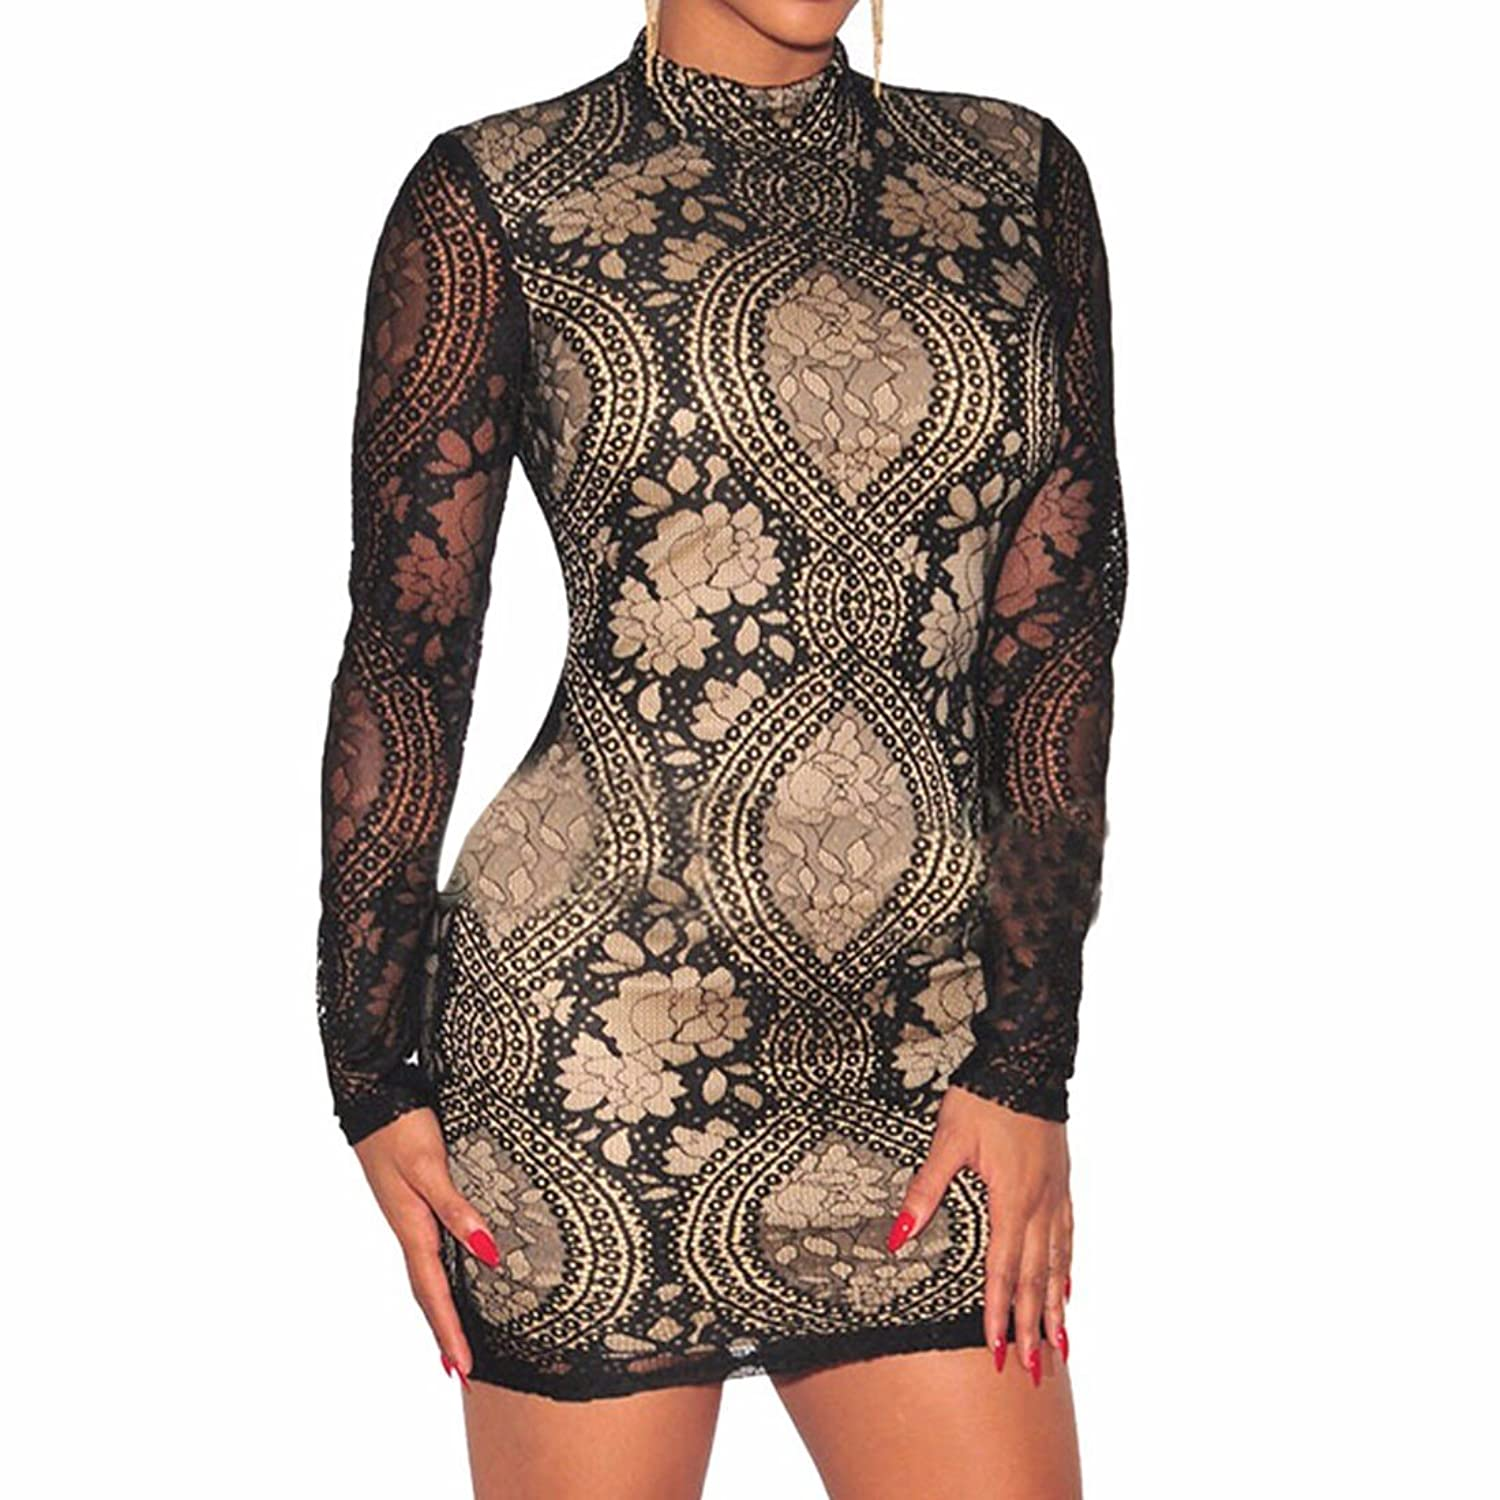 Women Charm Long Sleeve Crochet Lace Floral Stand Collar Party Short Dresses